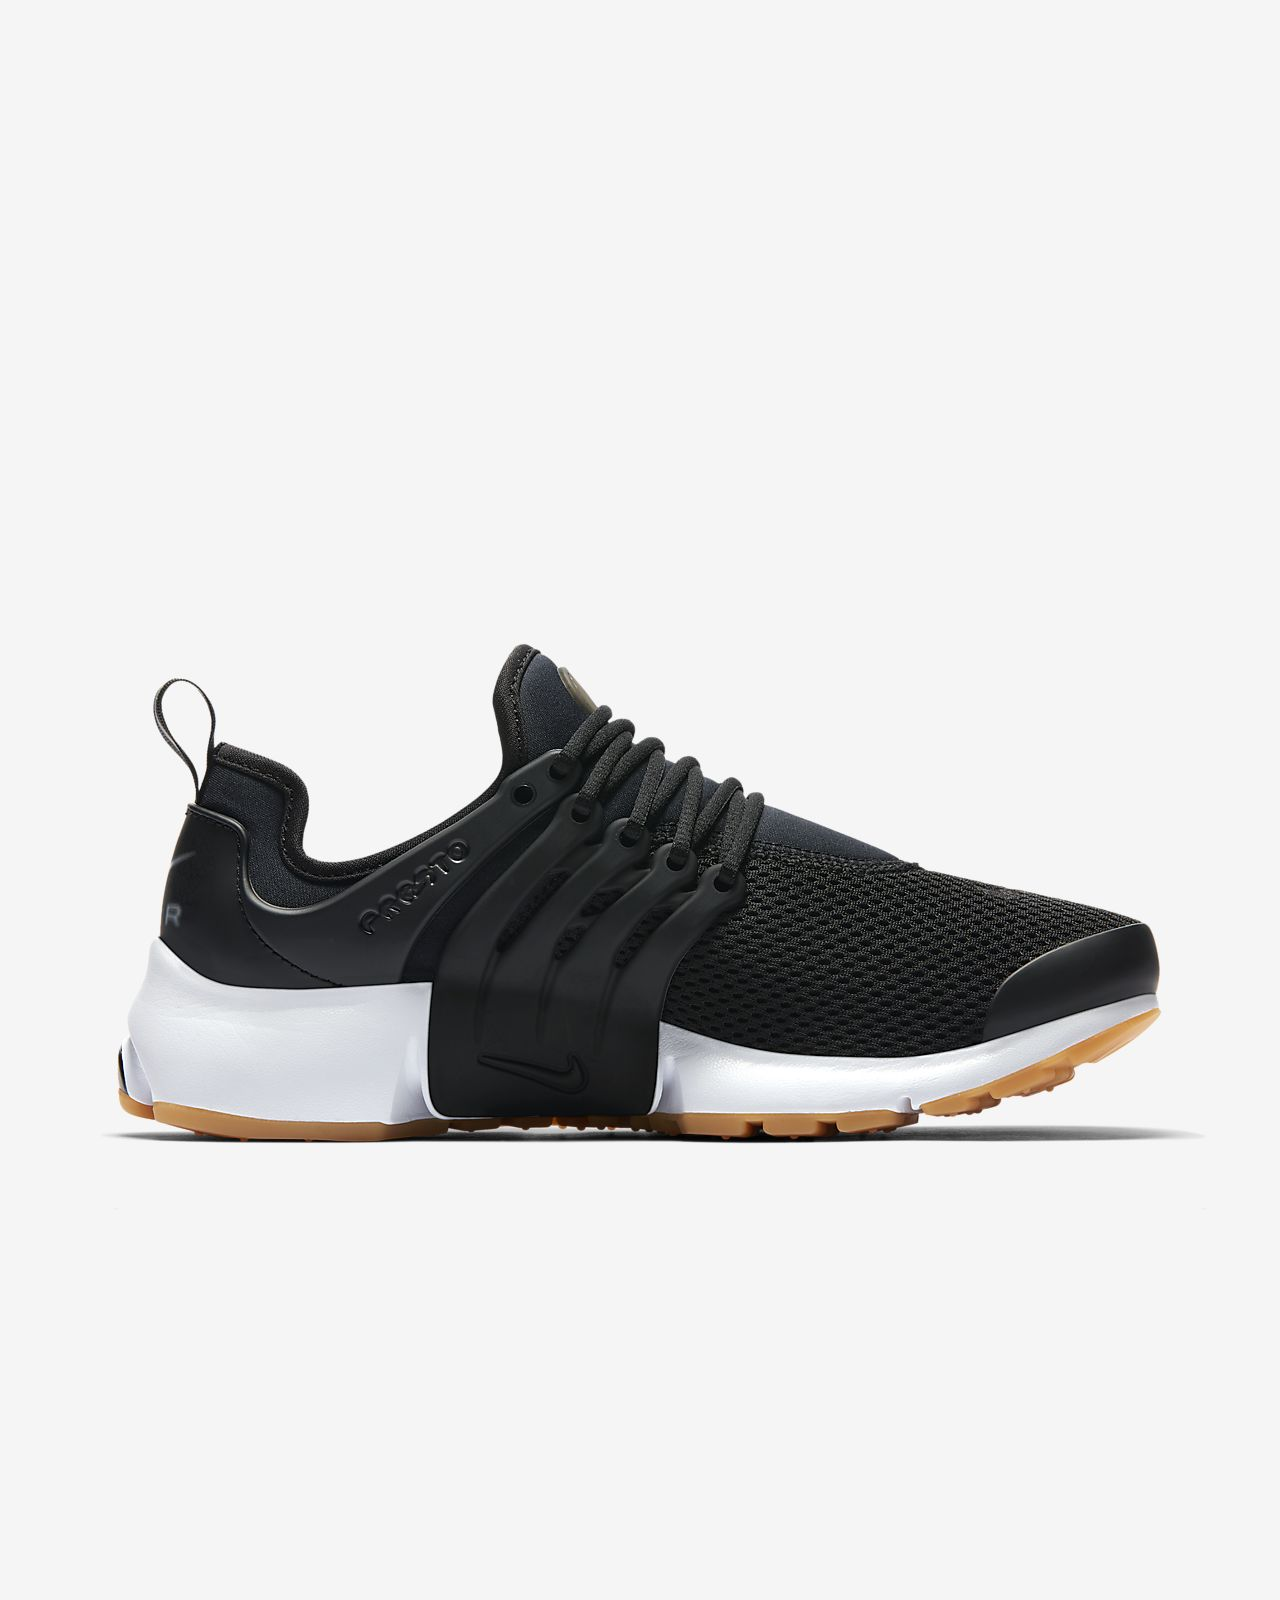 the latest 4a41c 1f406 ... Nike Air Presto Womens Shoe